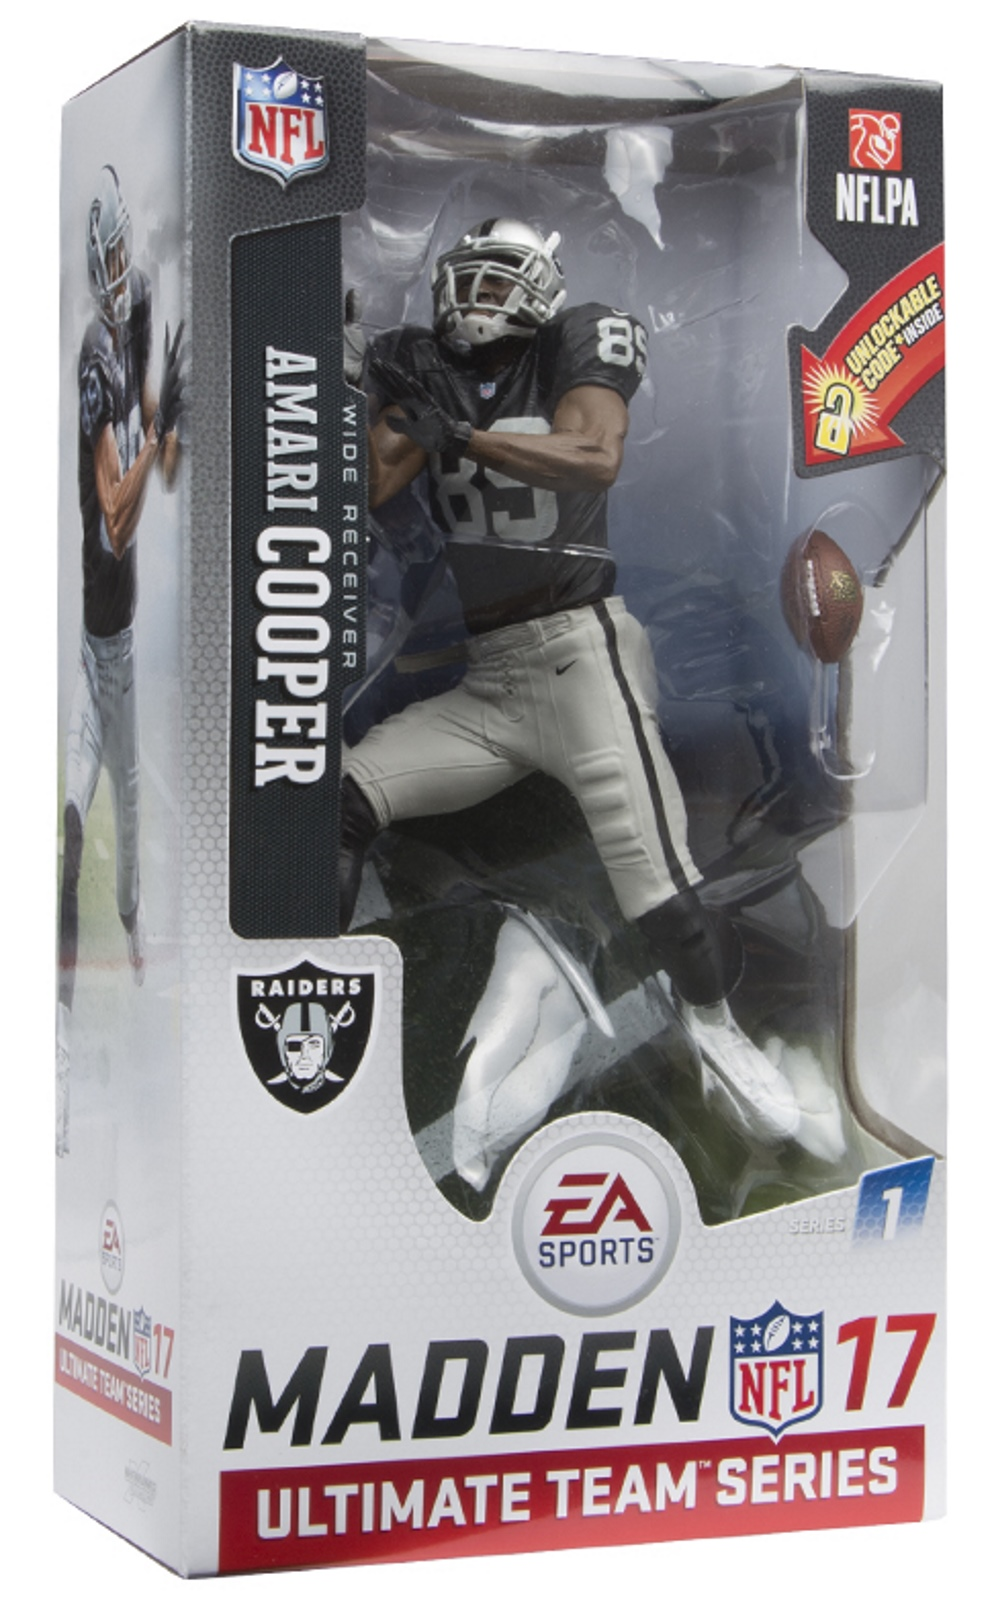 Amari Cooper NFL Ultimate Team Series 1 Madden 17 McFarlane figure Oakland Raiders